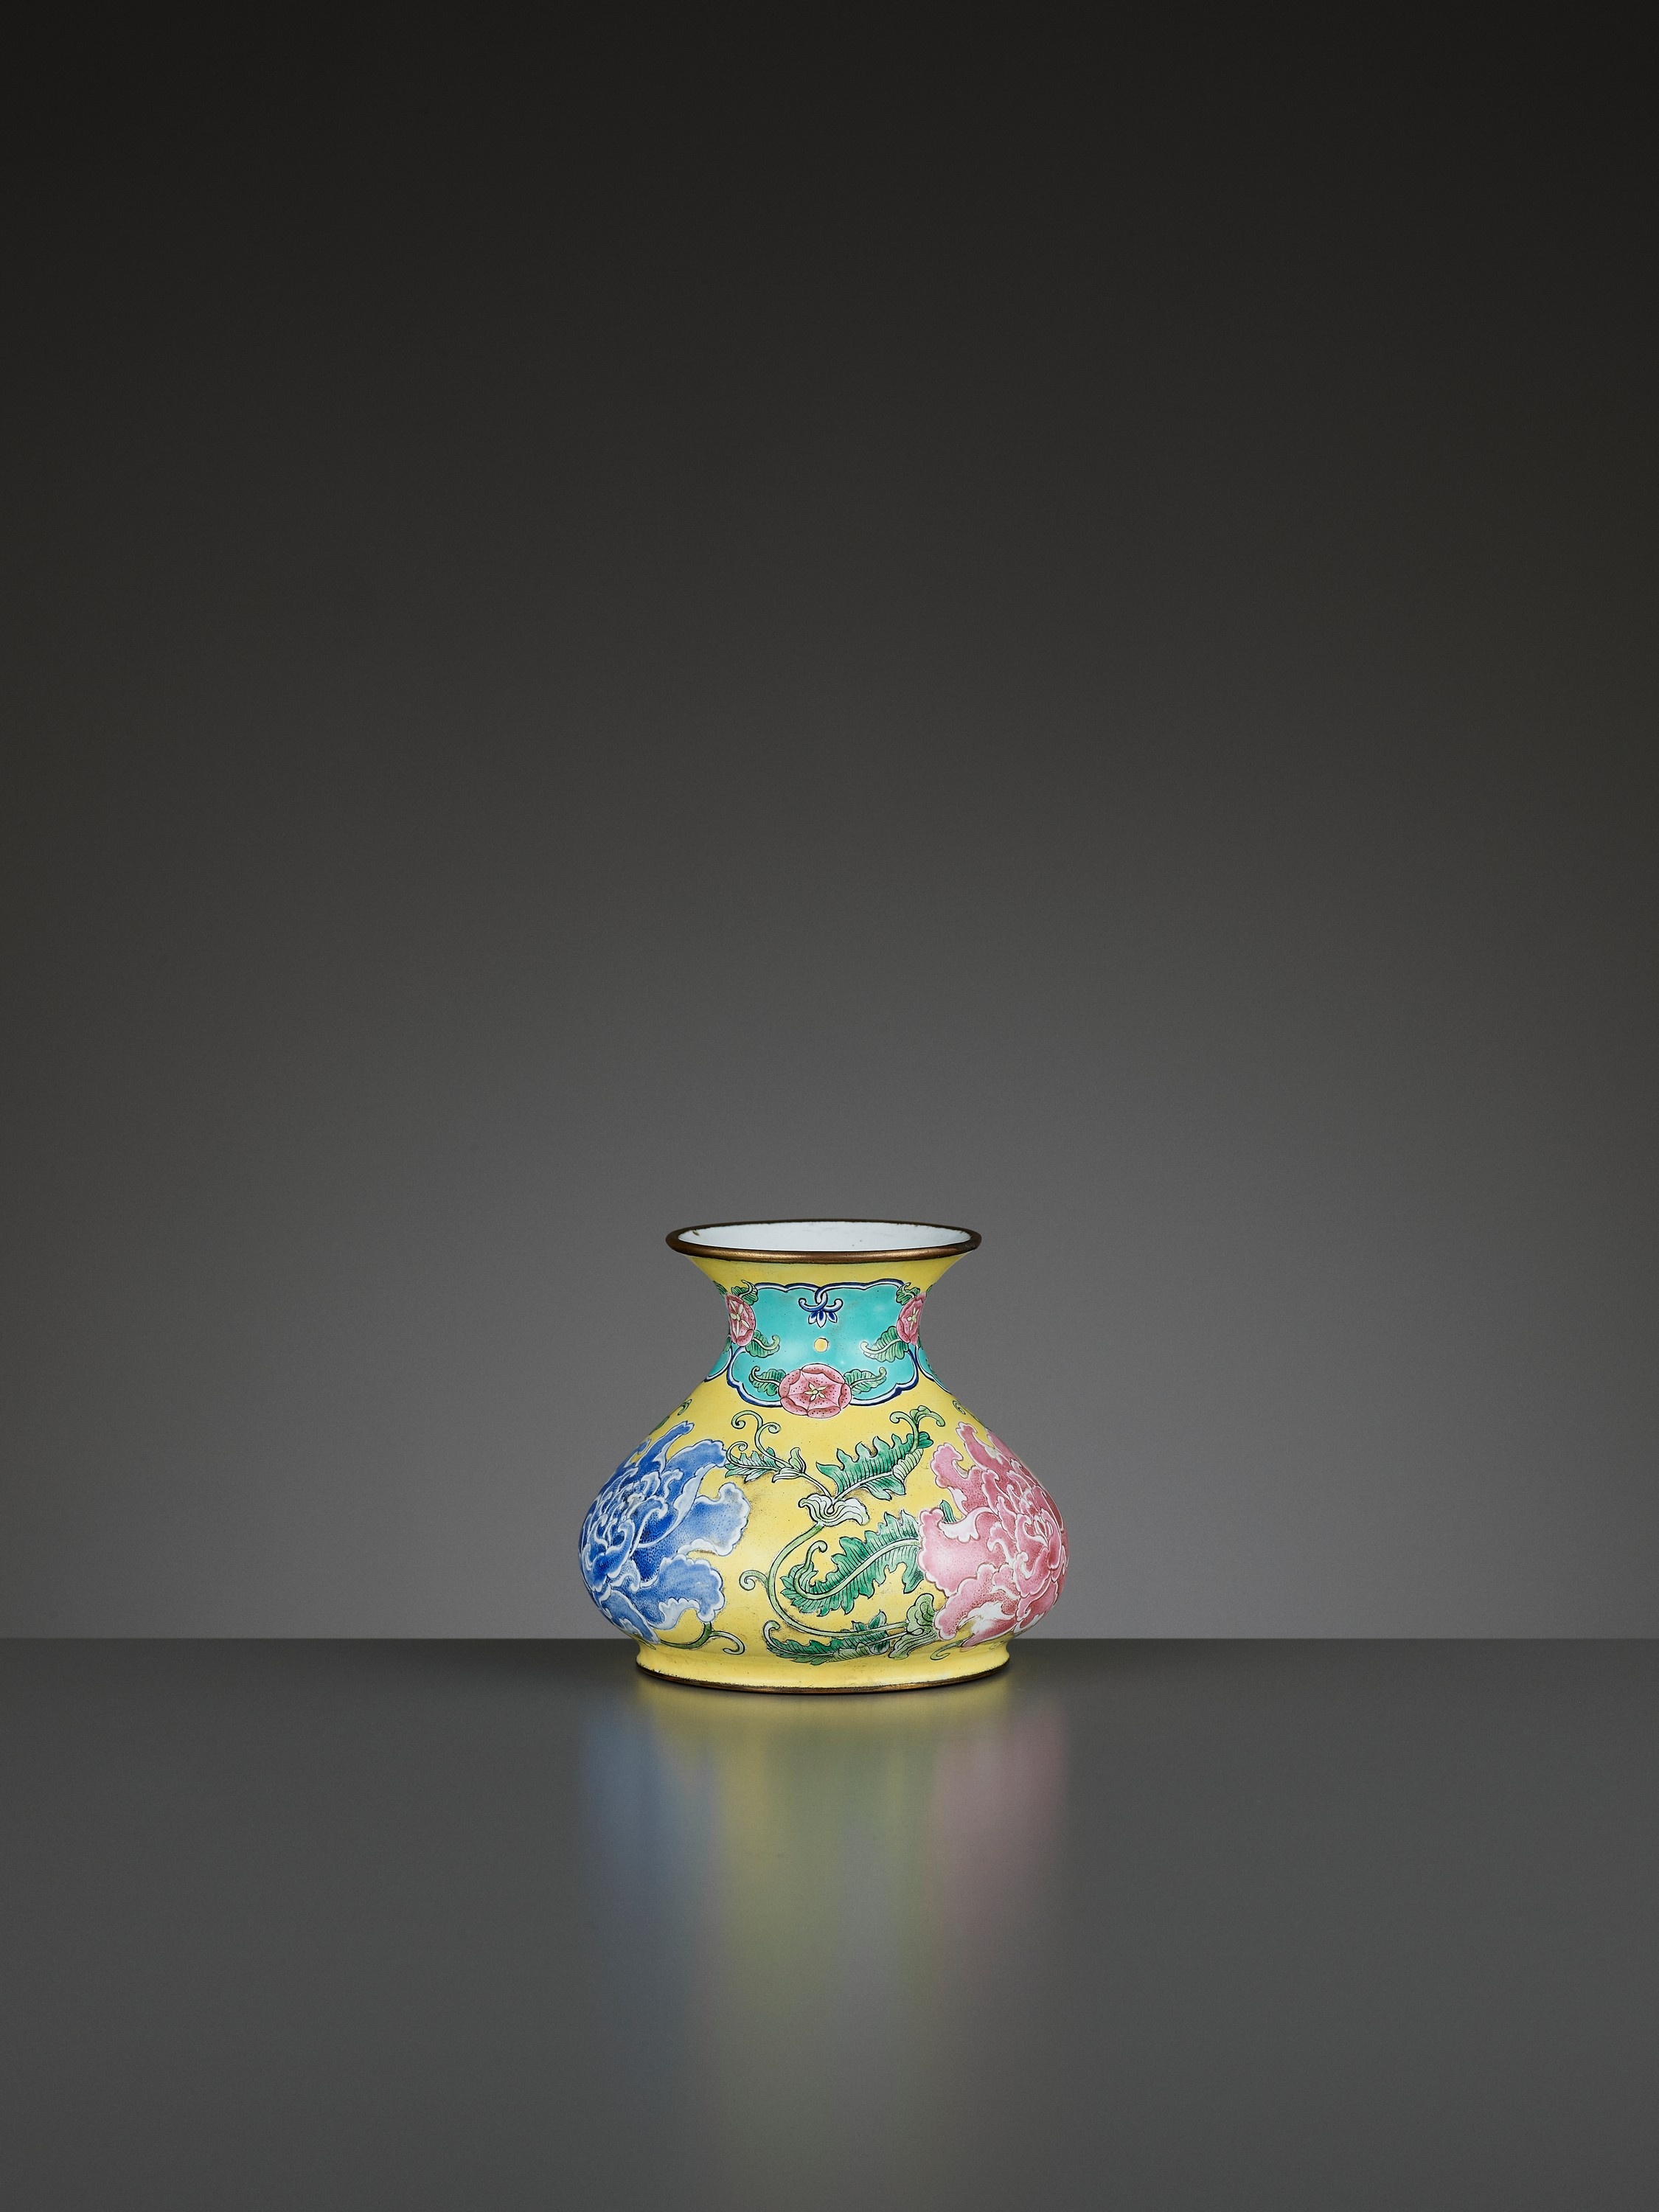 A BEIJING ENAMEL ON COPPER 'PEONIES' WATER POT, QIANLONG MARK AND PERIOD - Image 7 of 11